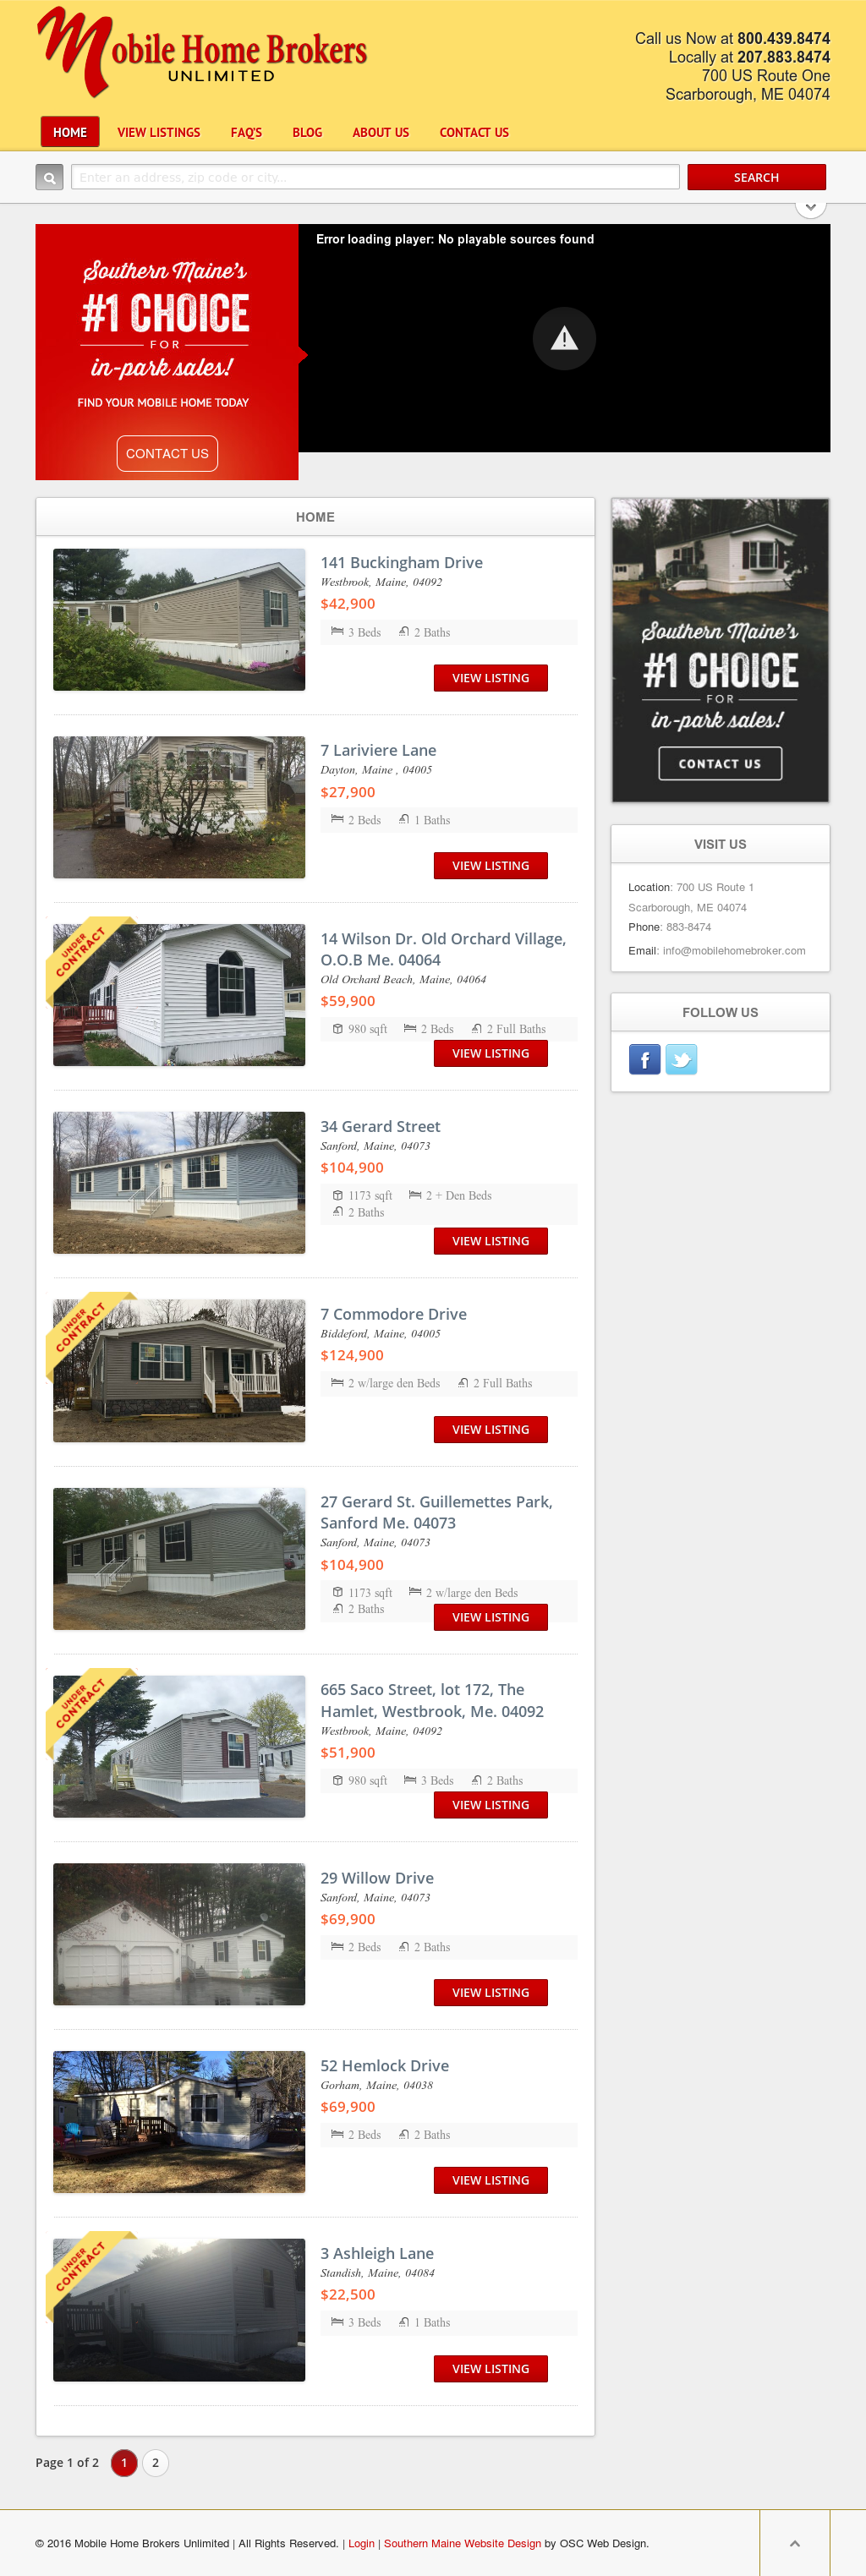 Magnificent Mobilehomebroker Competitors Revenue And Employees Owler Download Free Architecture Designs Scobabritishbridgeorg